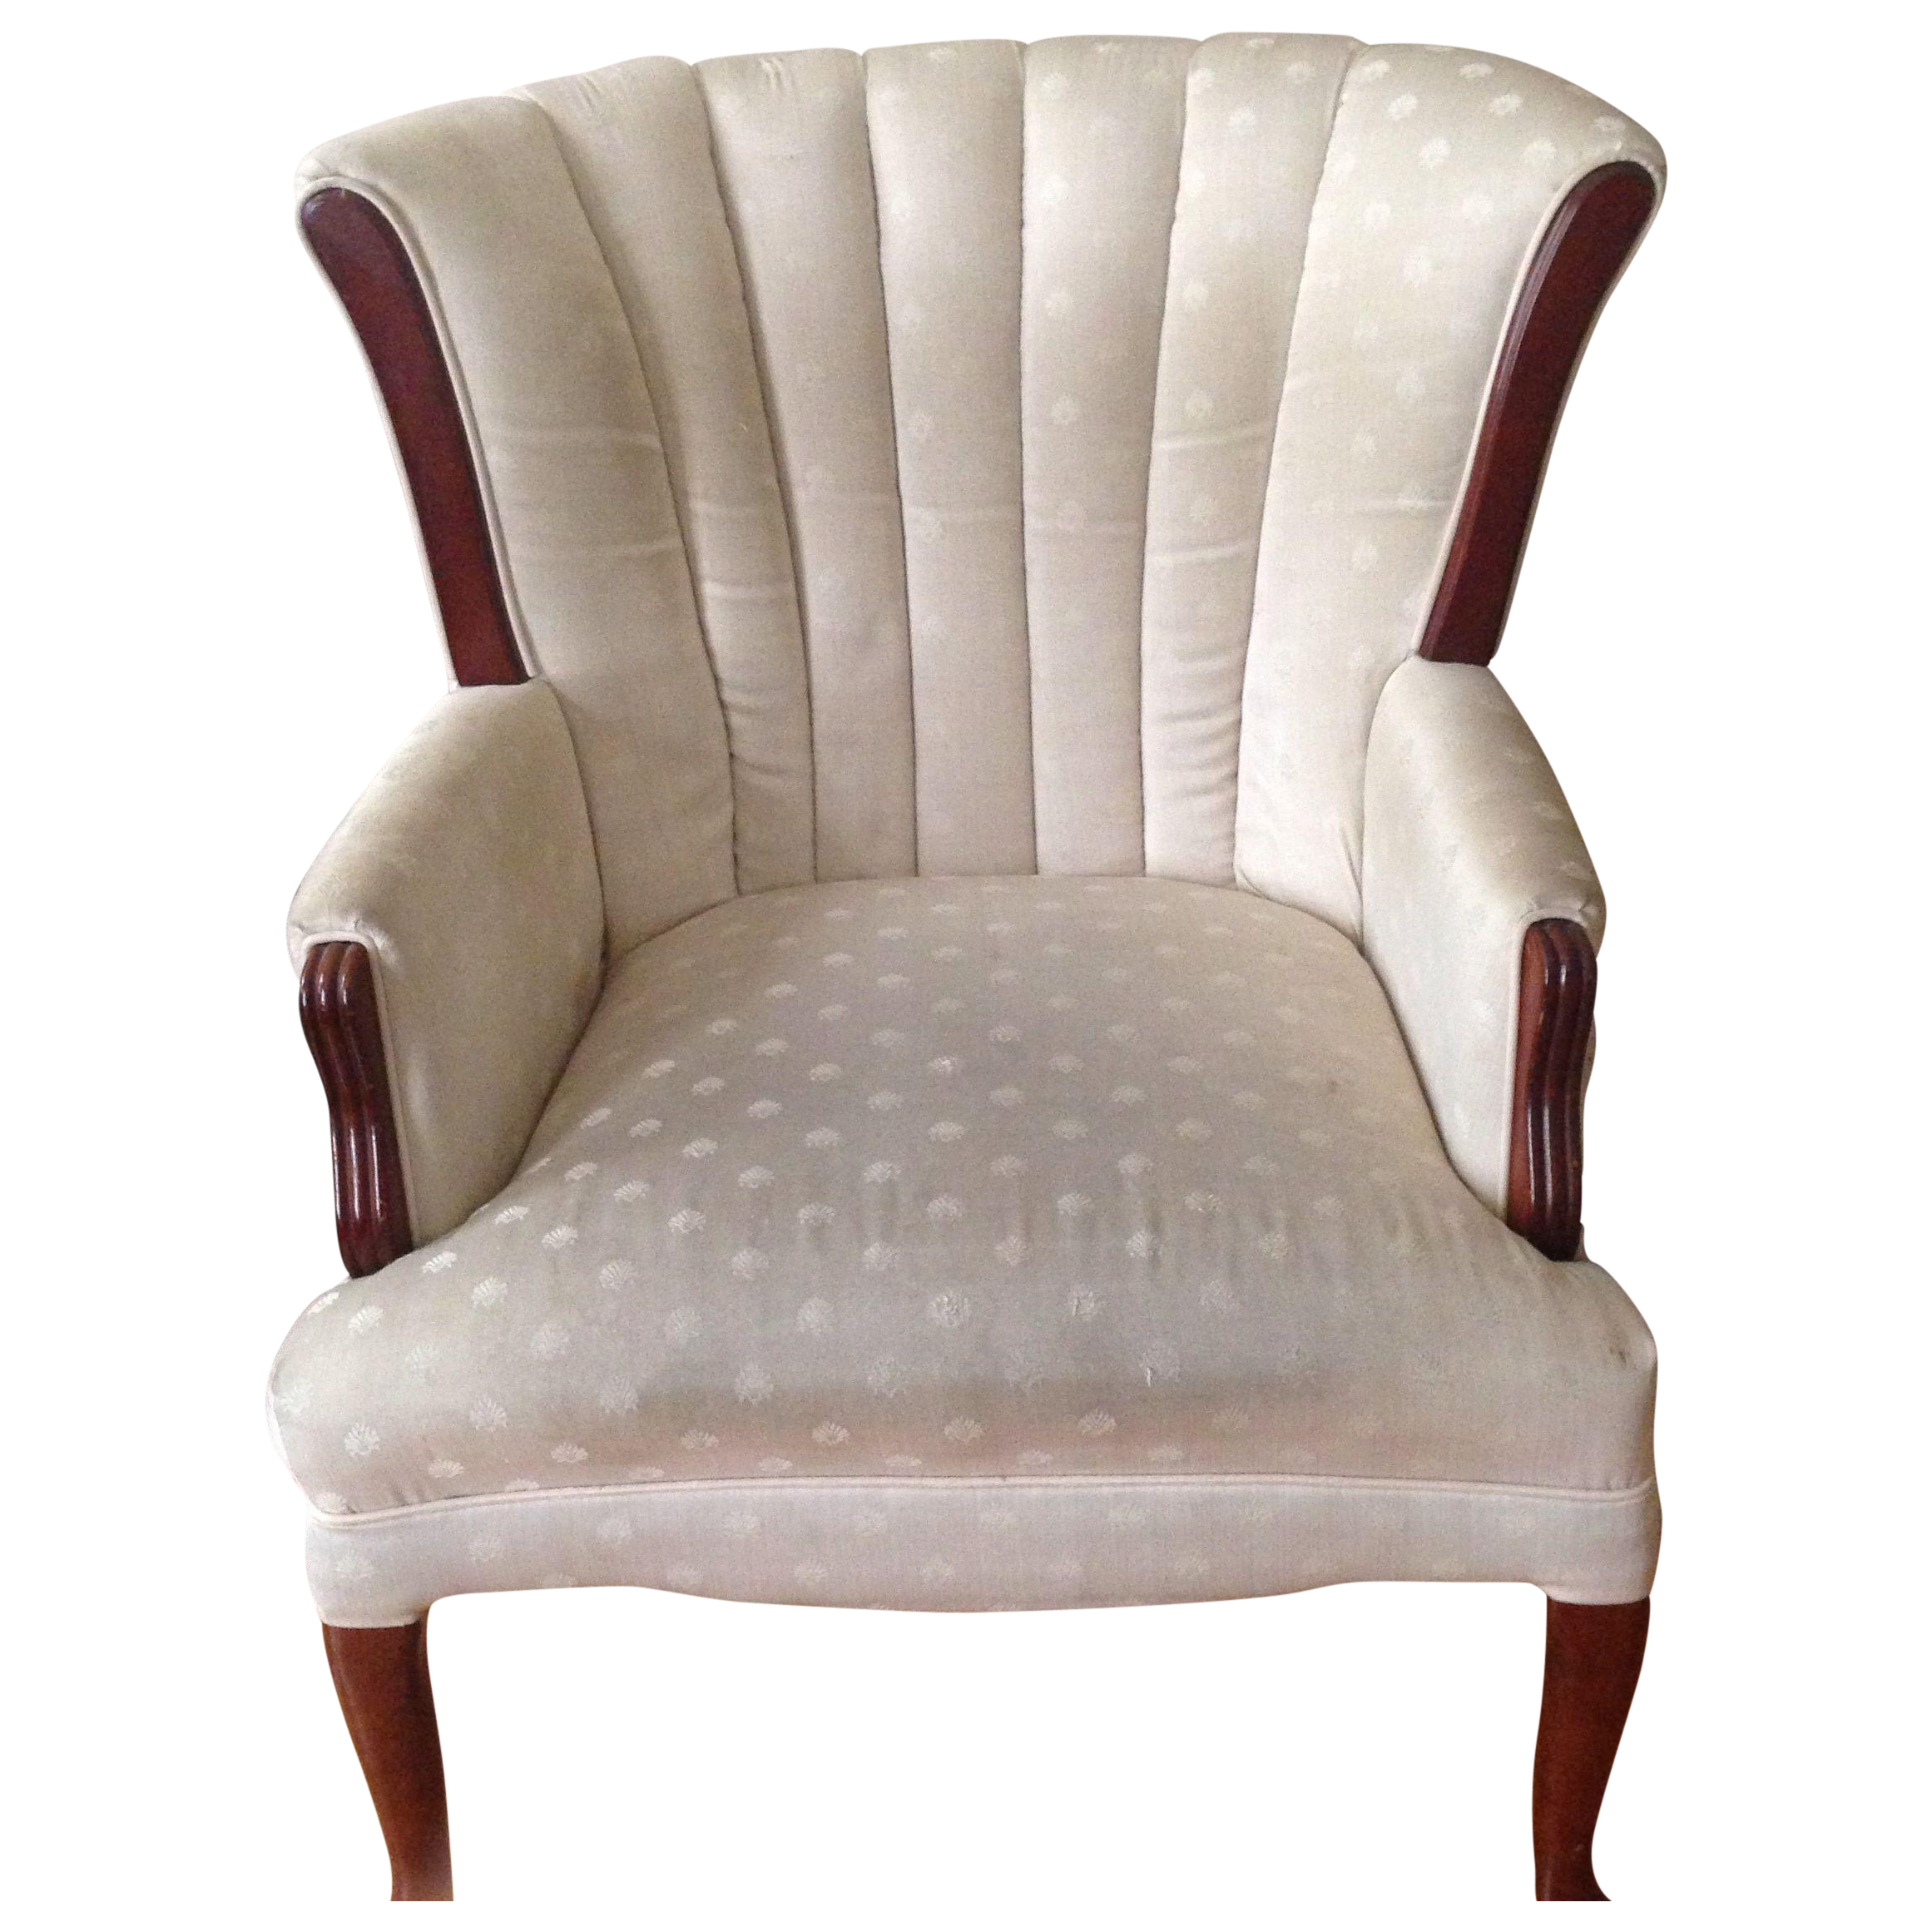 Queen Anne Channel Back Chair on Chairish $200